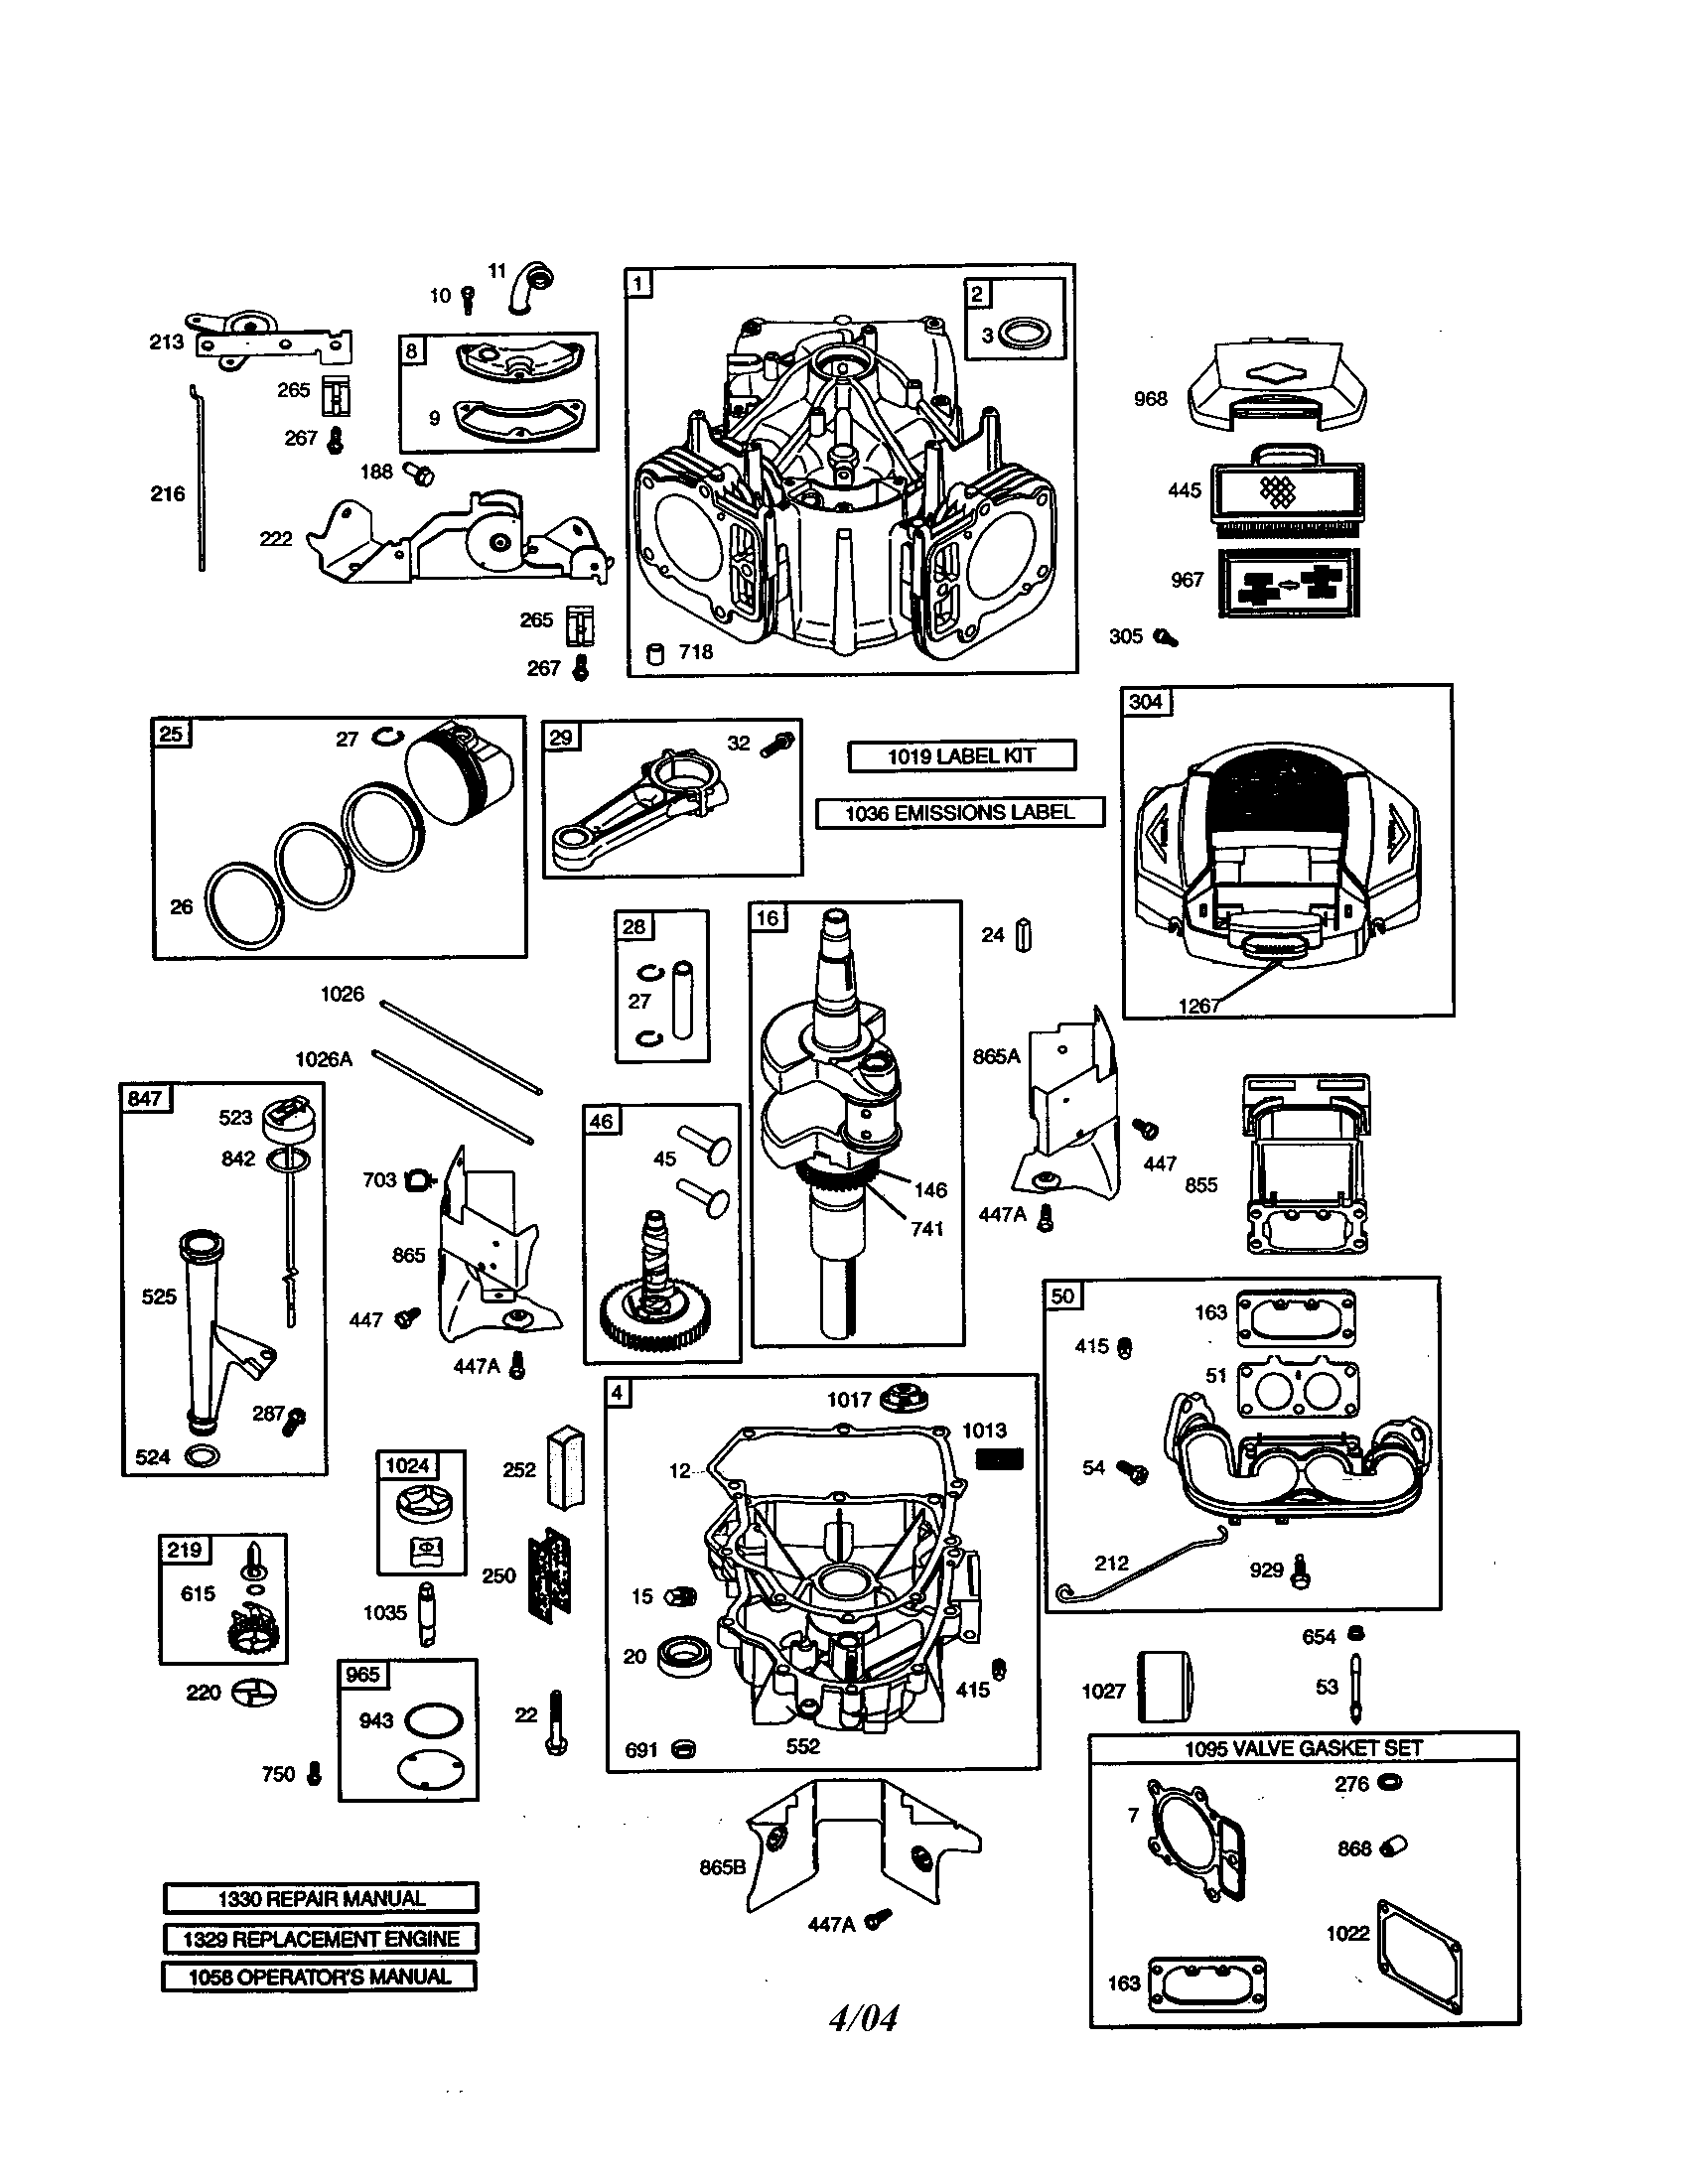 18 hp briggs and stratton carburetor diagram single phase voltage drop formula engine 446777